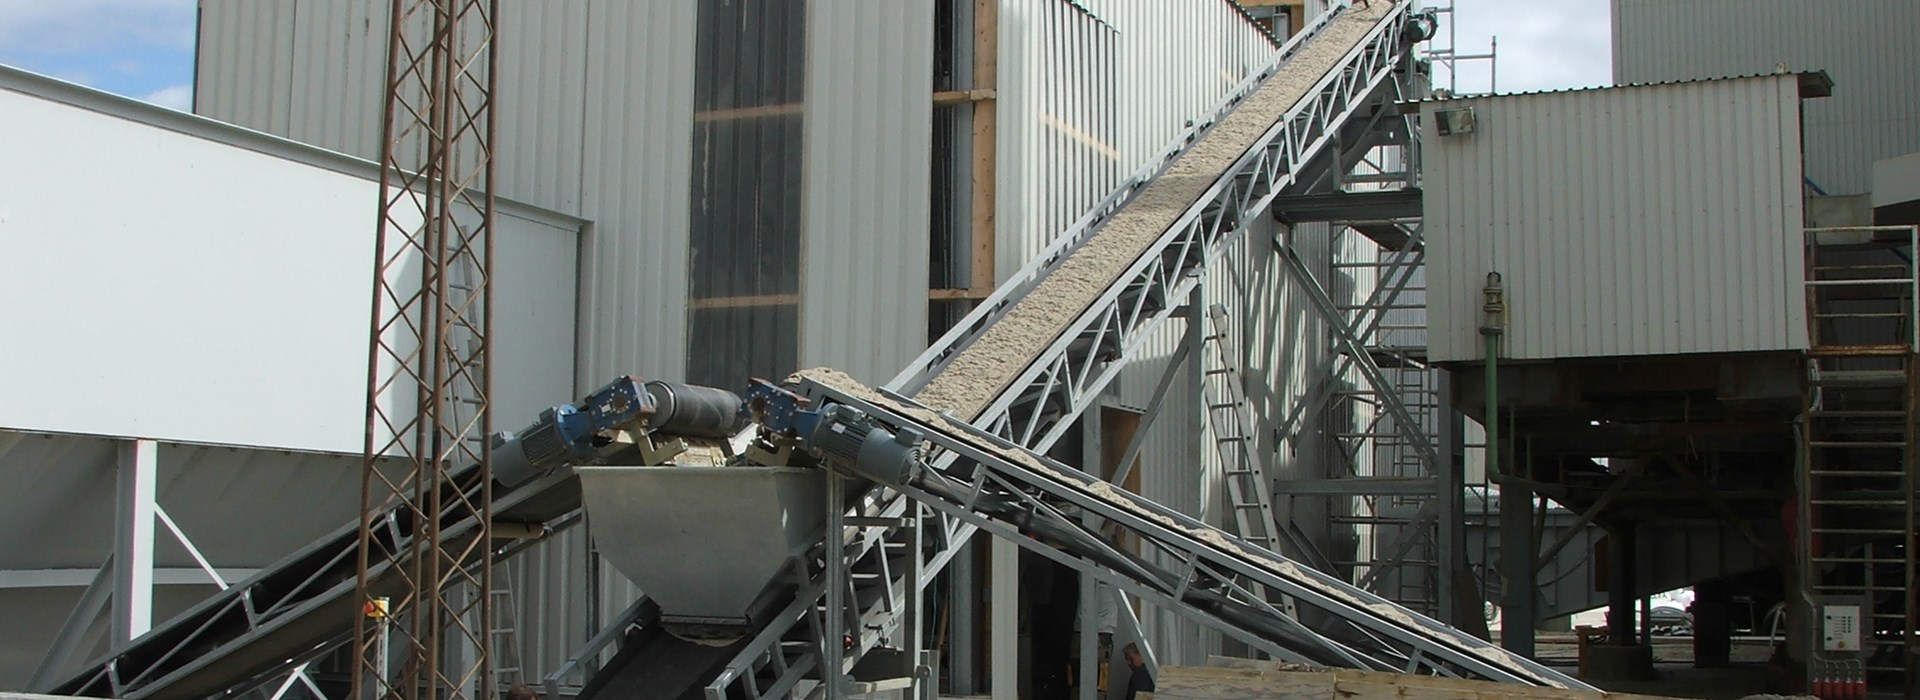 Conveyor Jtt Transportør